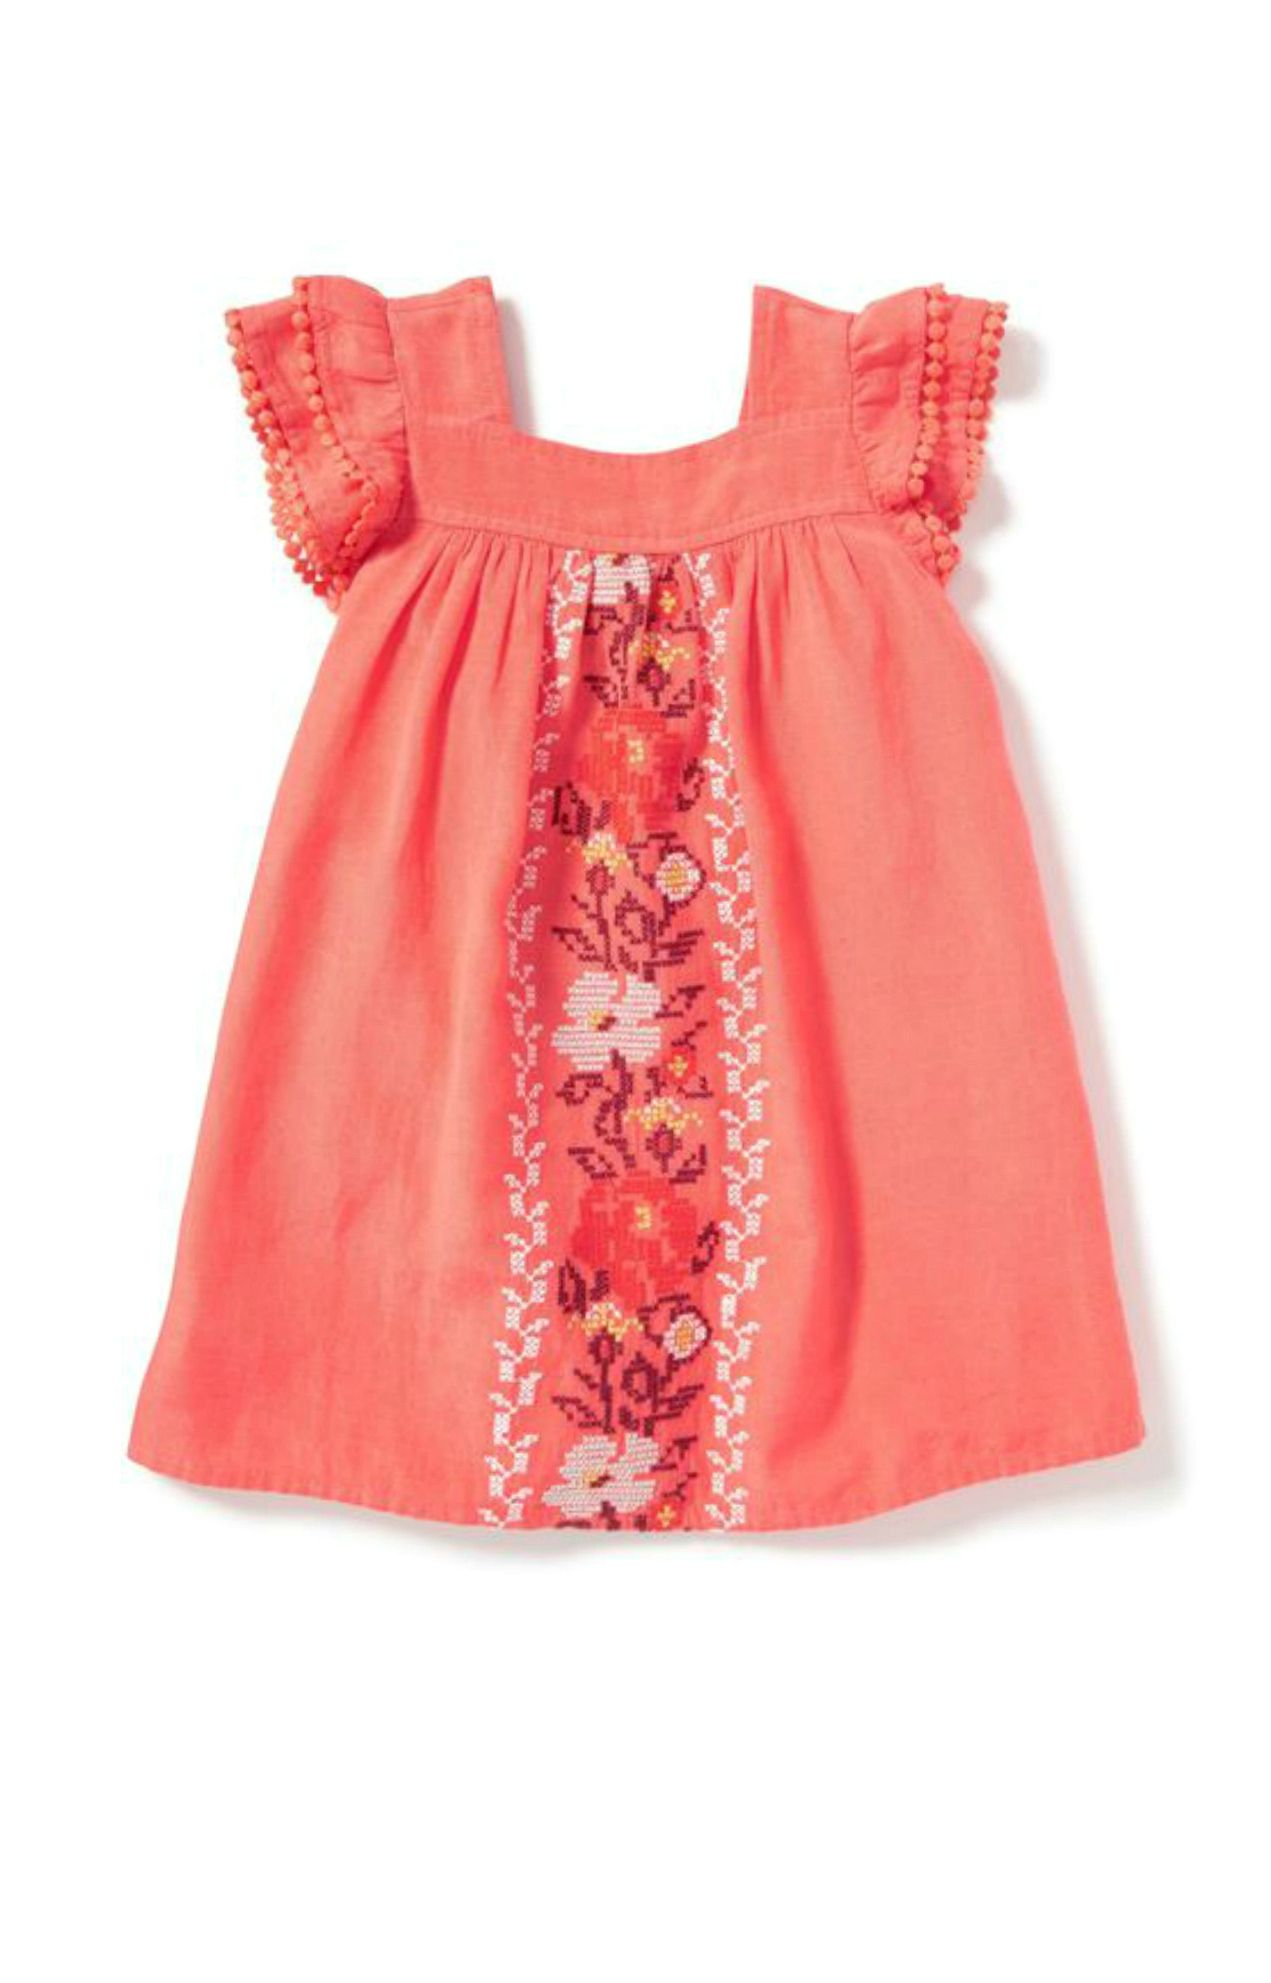 Embroidered Flutter Sleeve Dress Old Navy